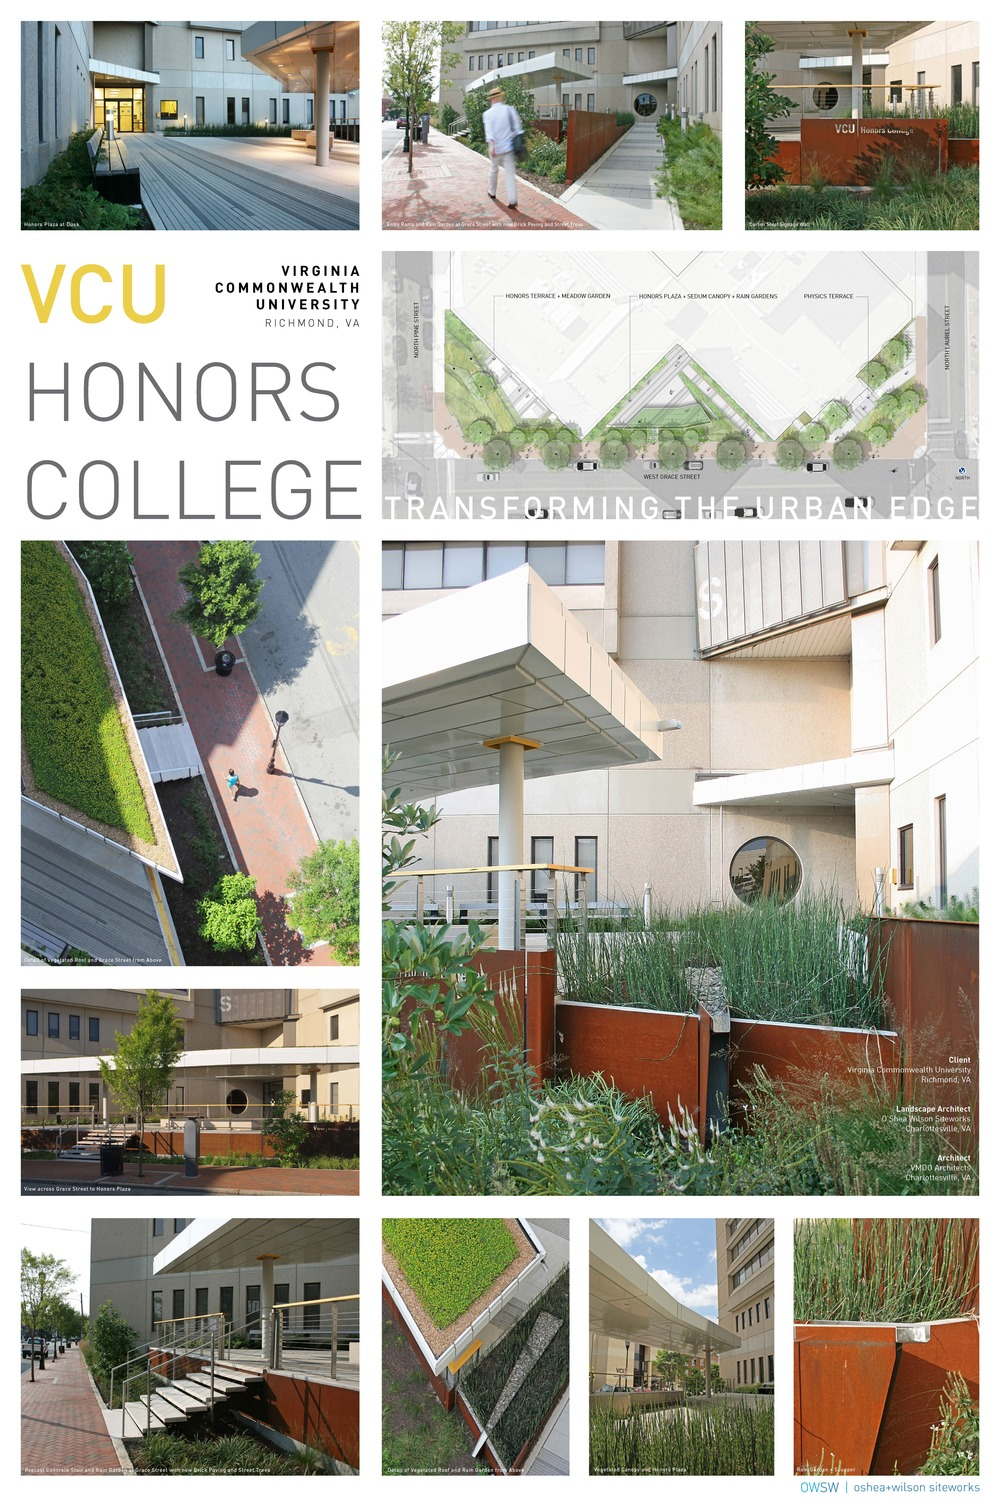 VCU HONORS COLLEGE_TRANSFORMING THE URBAN EDGE_POSTER.jpg